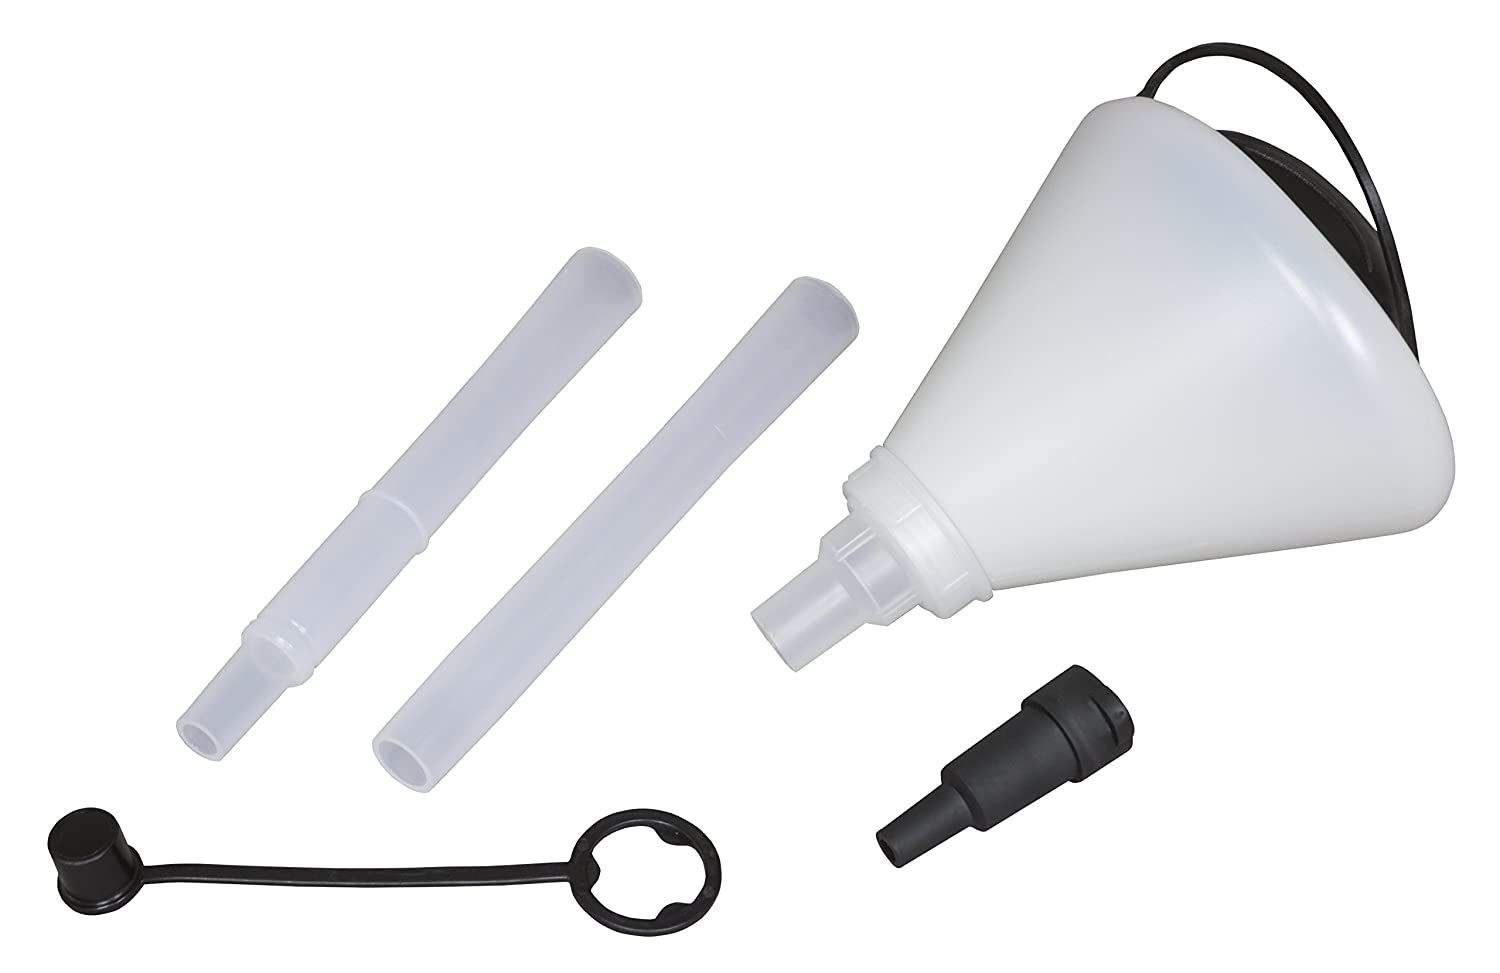 Lisle 17252 Transaxle Funnel with Extension